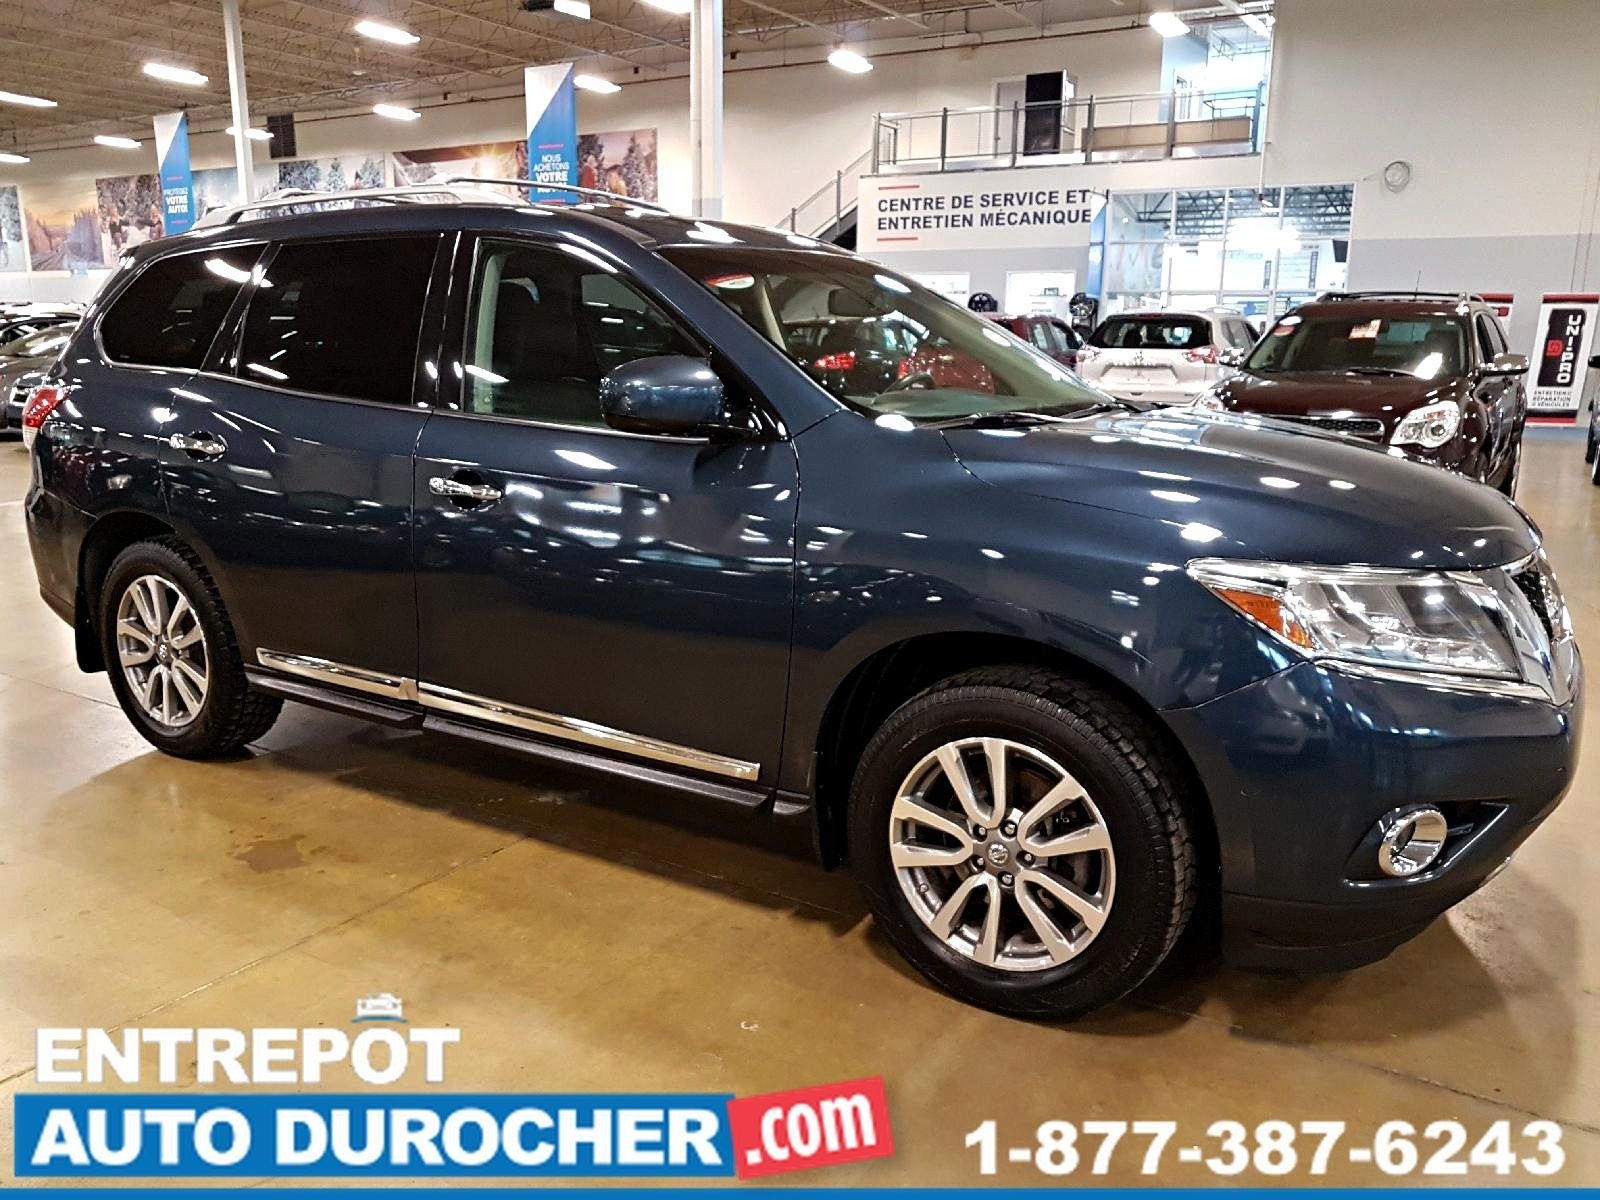 2013 Nissan Pathfinder SV AWD - TOIT OUVRANT - 7 PASSAGERS - CUIR